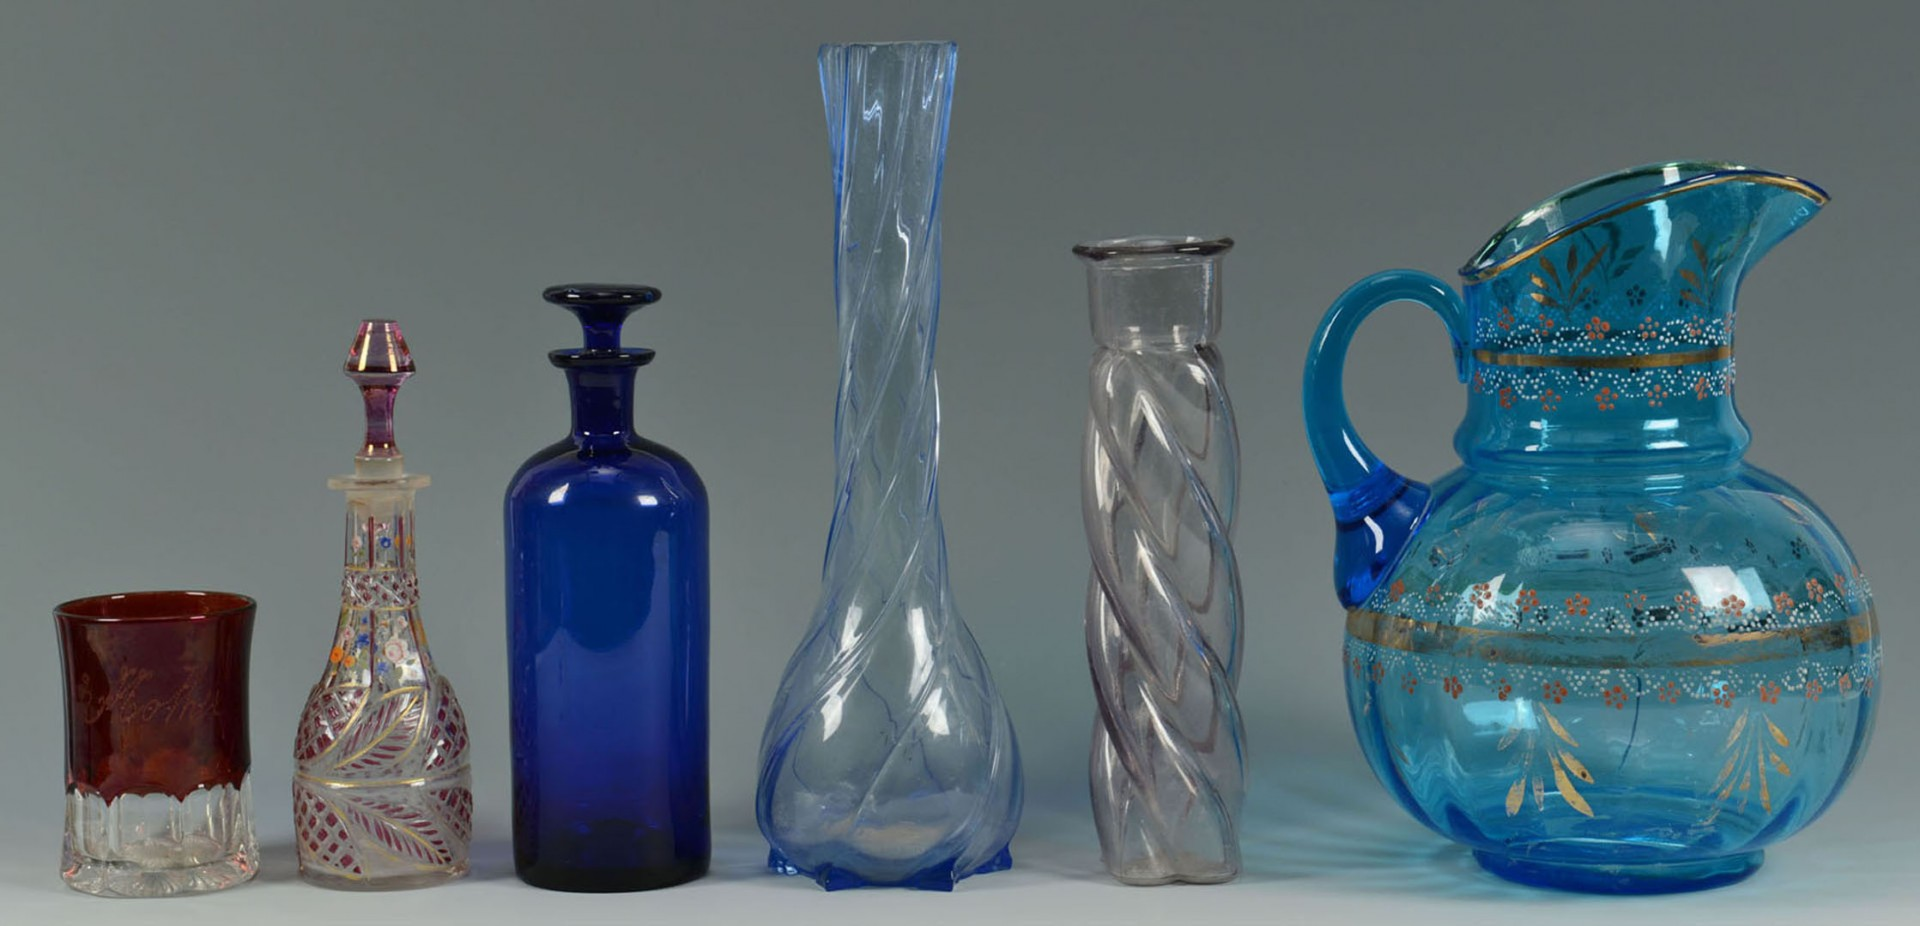 Lot 2872308: Large Grouping of Victorian Colored Glass, 21 pcs